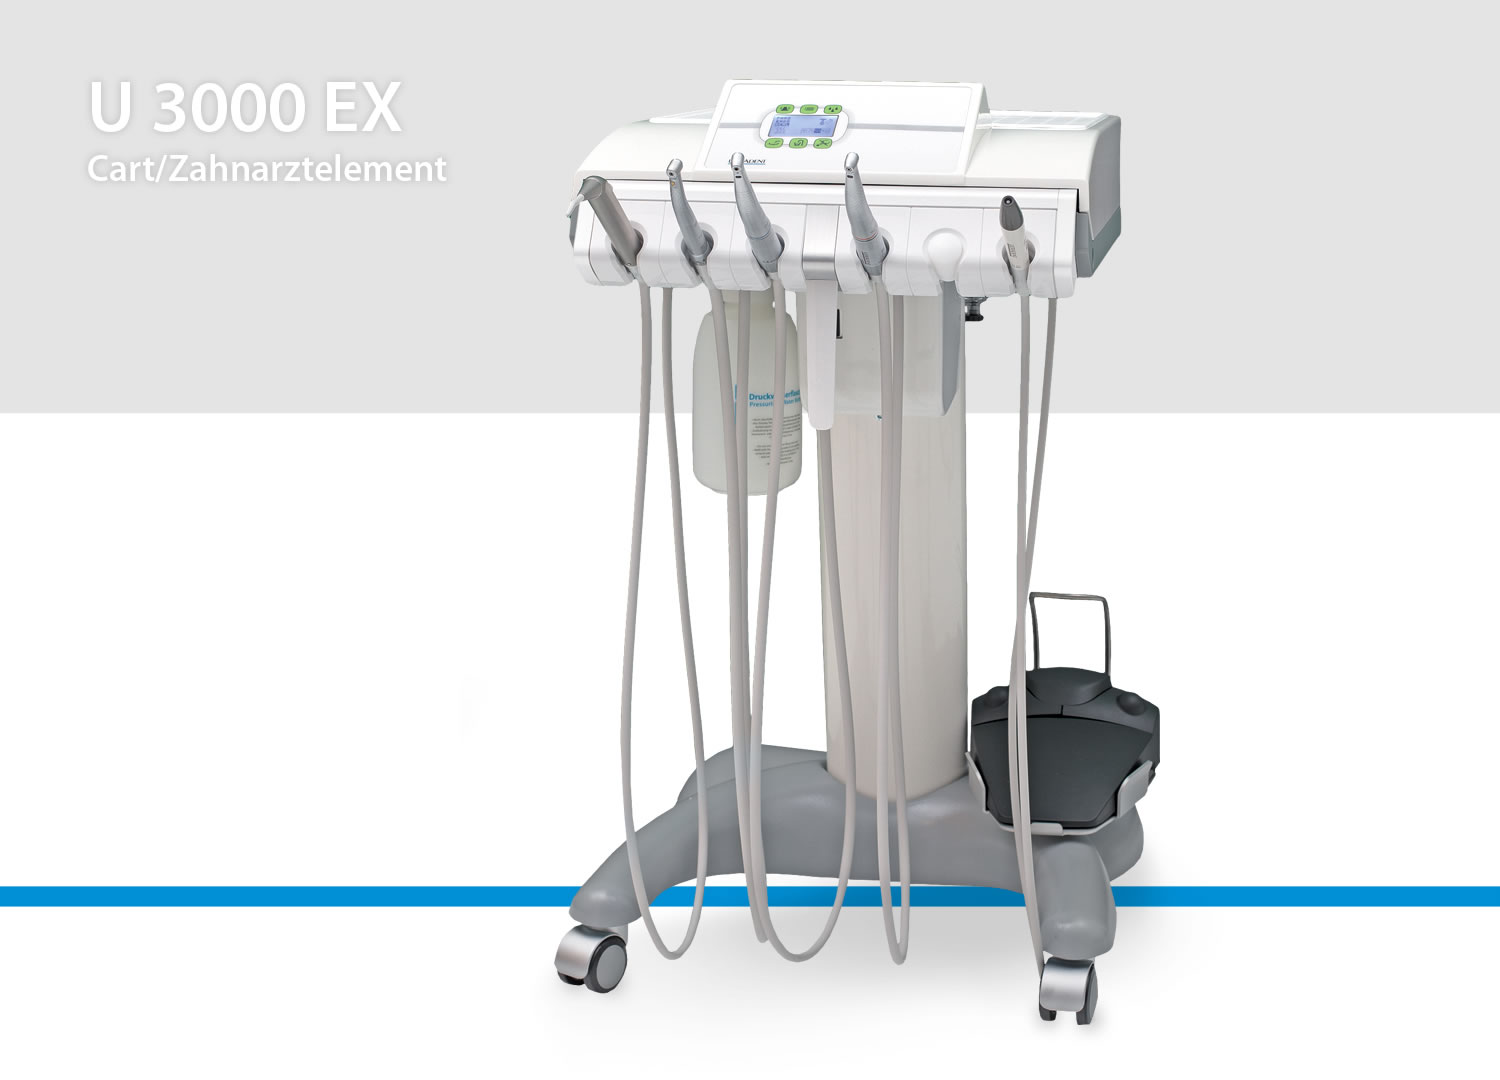 Mobile dental unit U 3000 EX